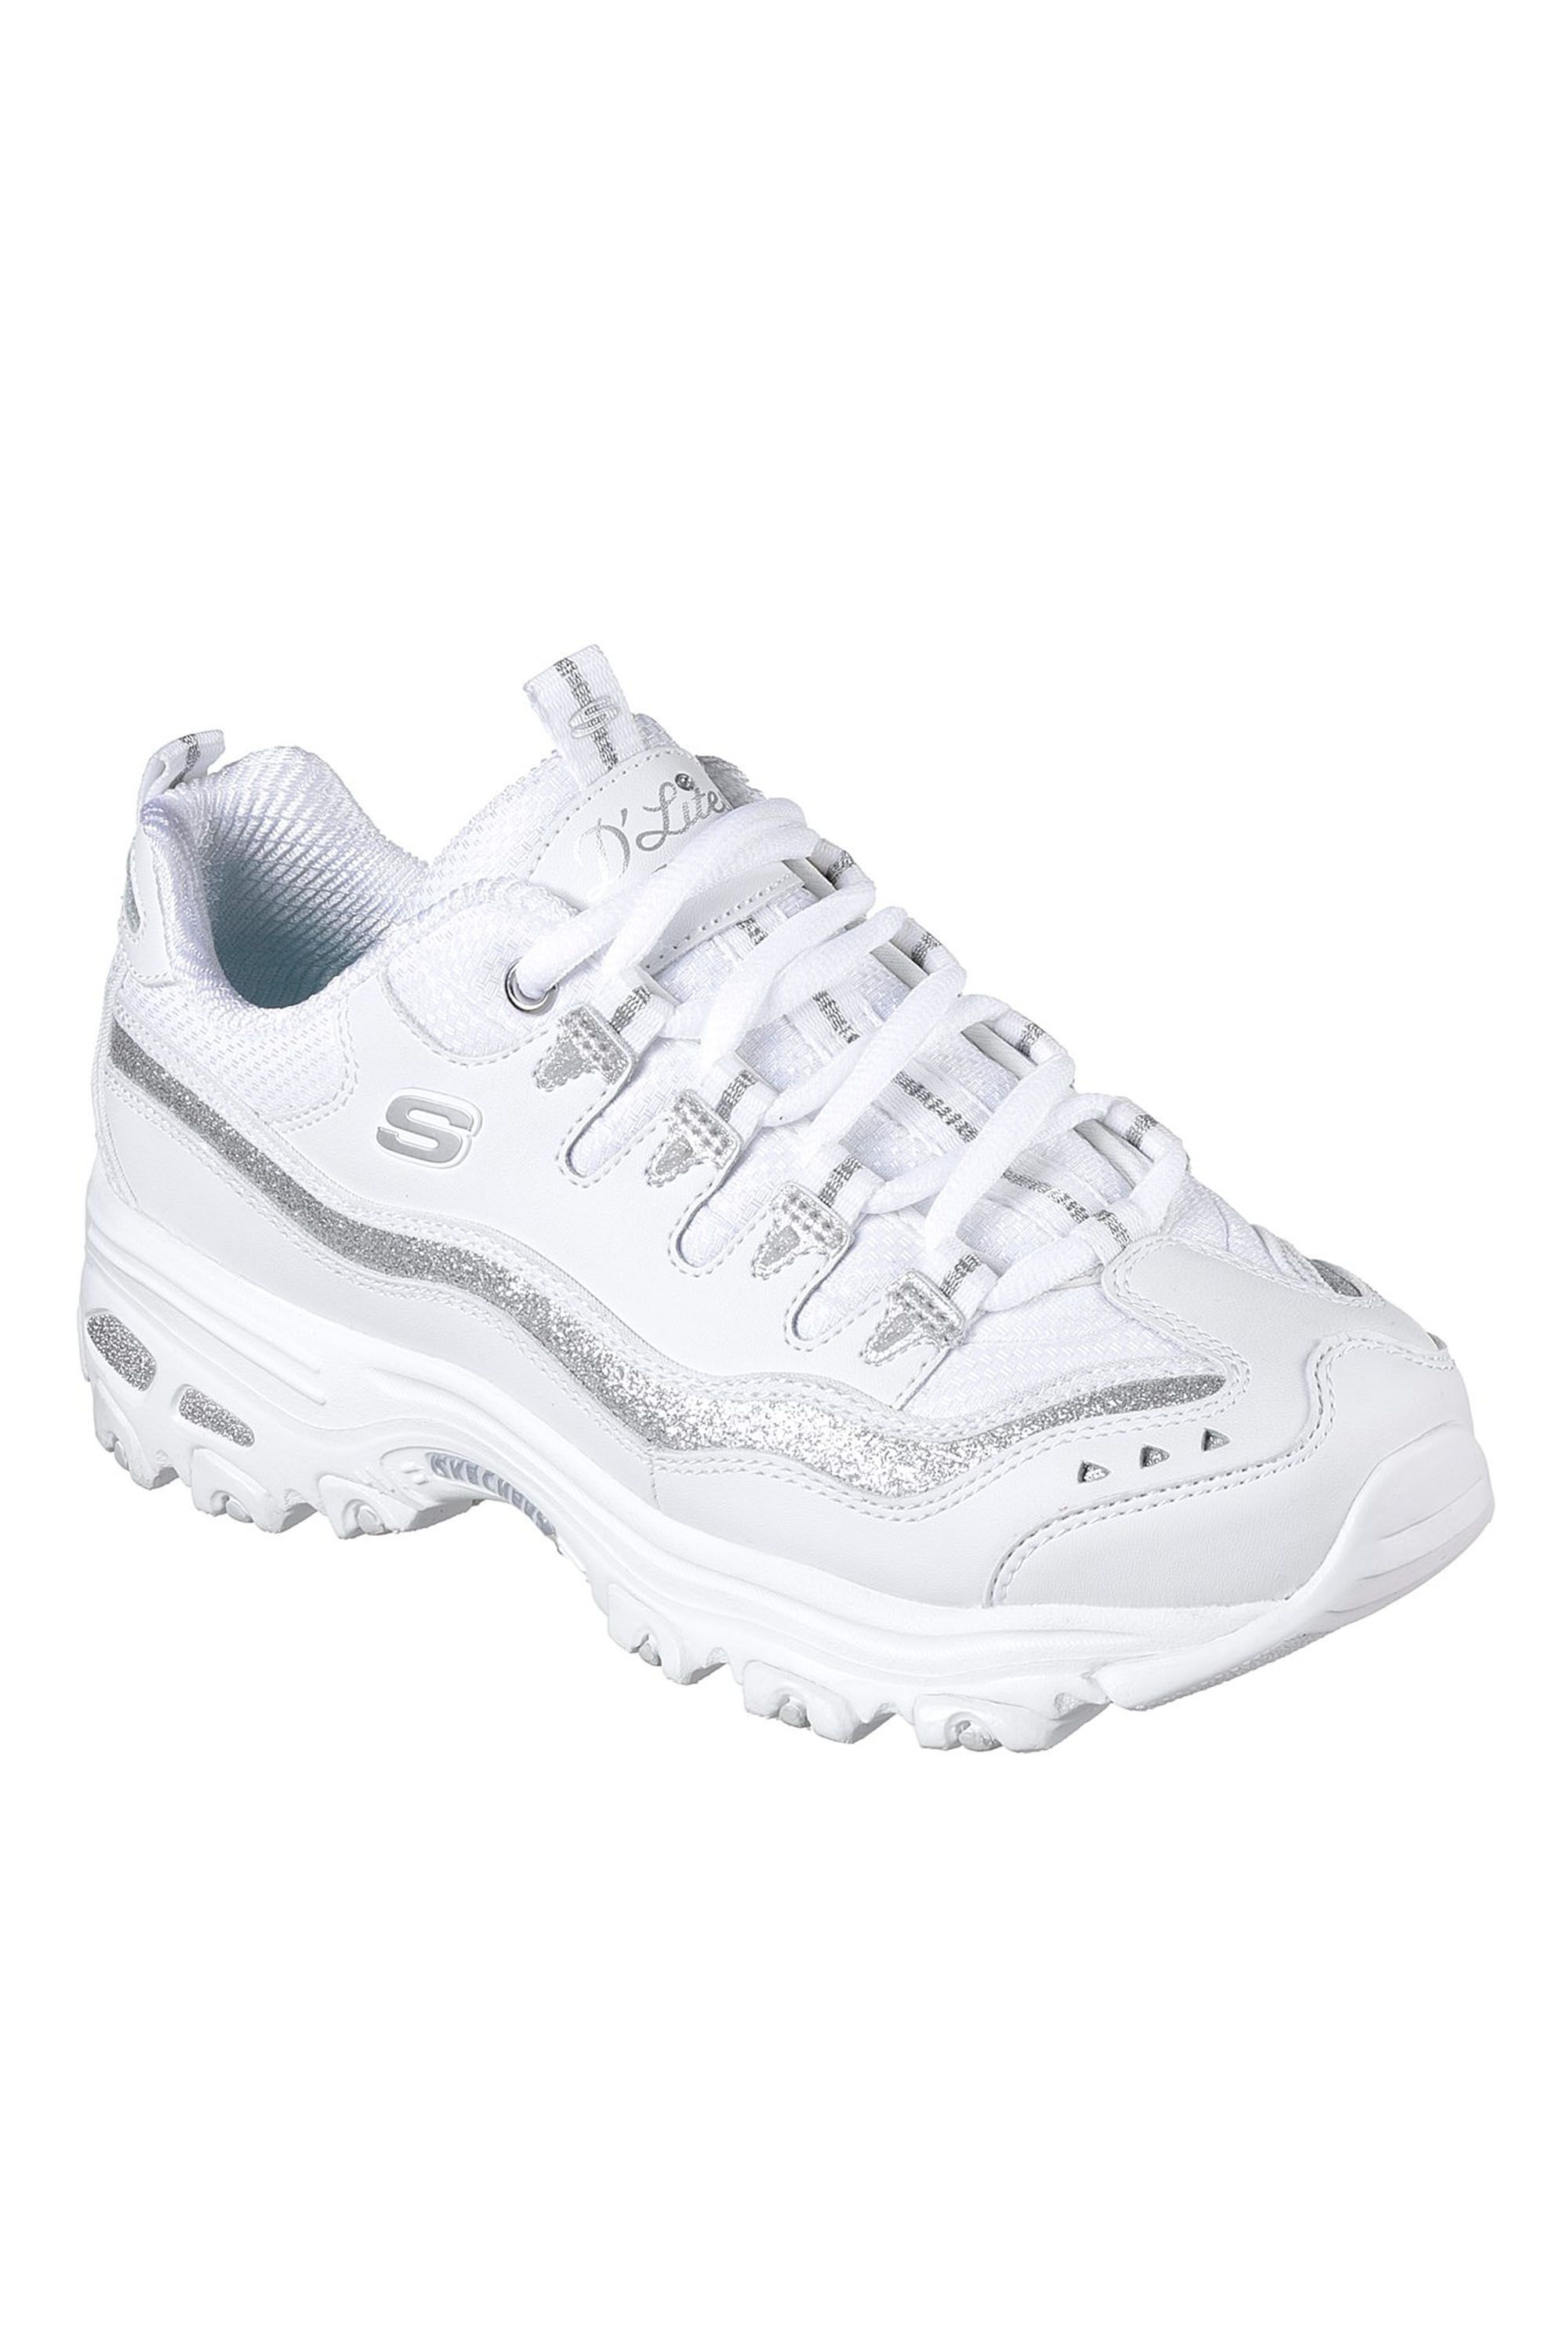 jcpenney orthopedic shoes